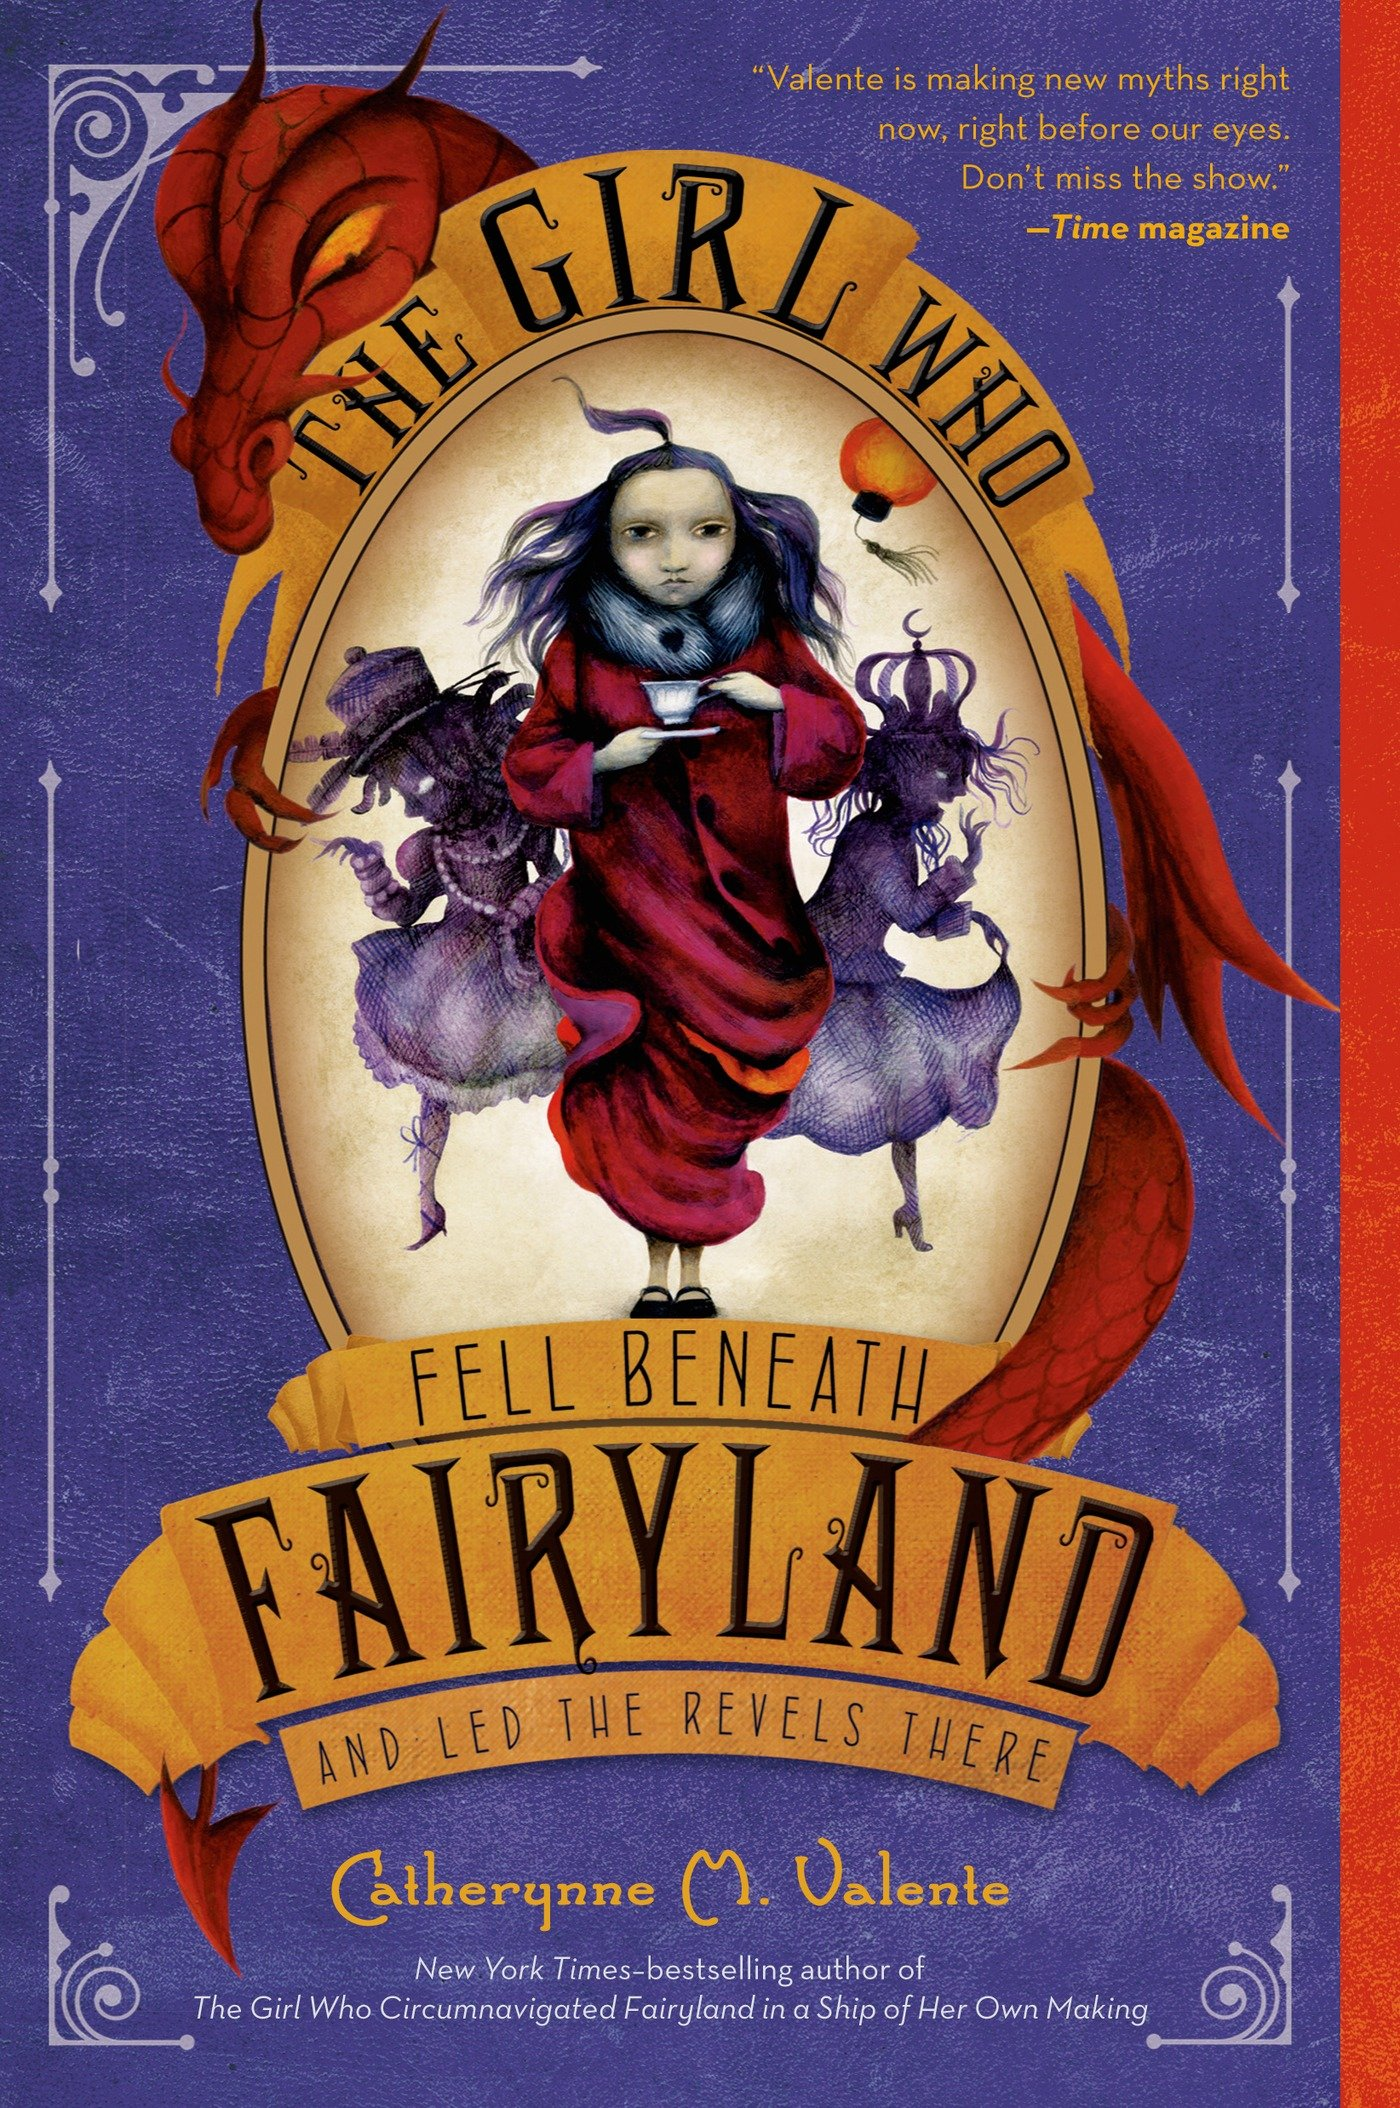 Image result for The Girl Who Fell Beneath Fairyland and Led the Revels There by Catherynne M Valente